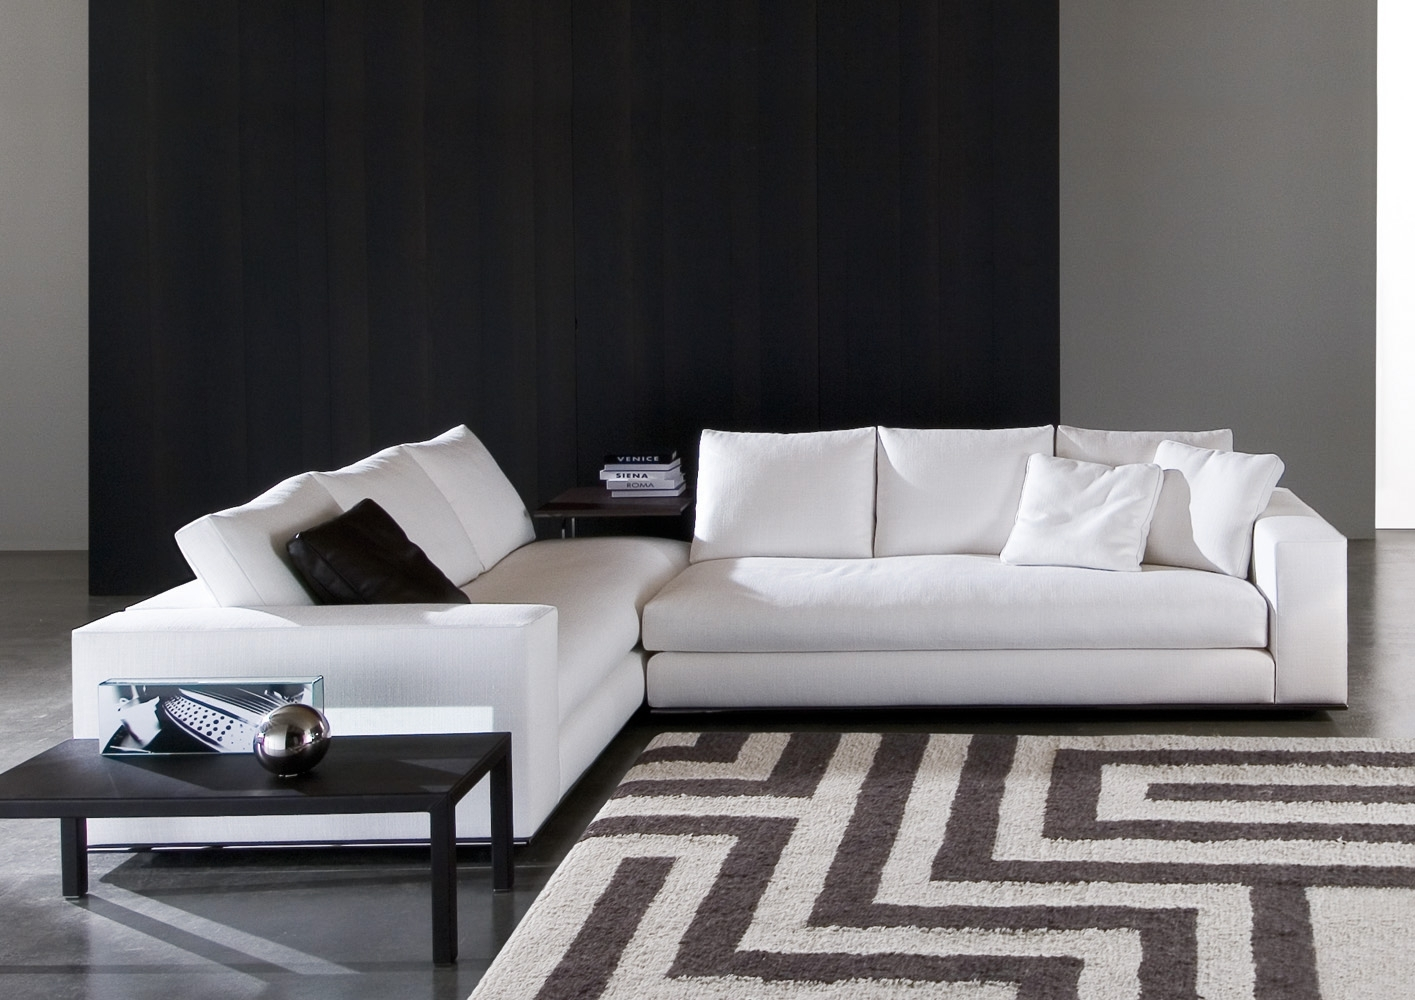 Hamilton Sectionalrodolfo Dordoni | Minotti Quickship in Hamilton Sectional Sofas (Image 2 of 10)